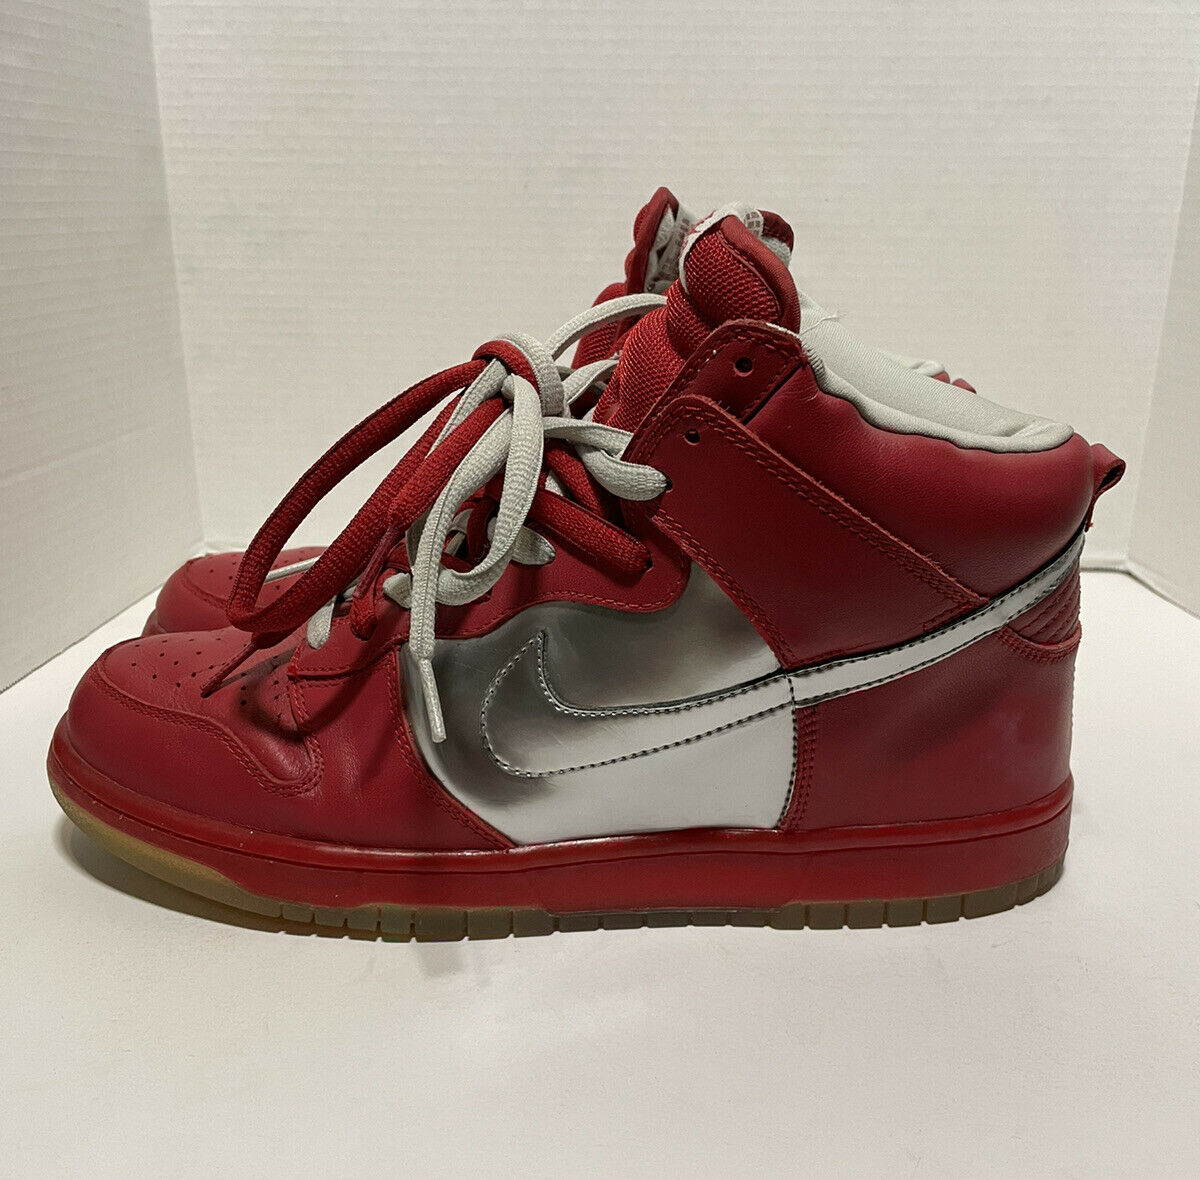 2006 Nike Mork And Mindy SB Dunk High Red/silver … - image 4